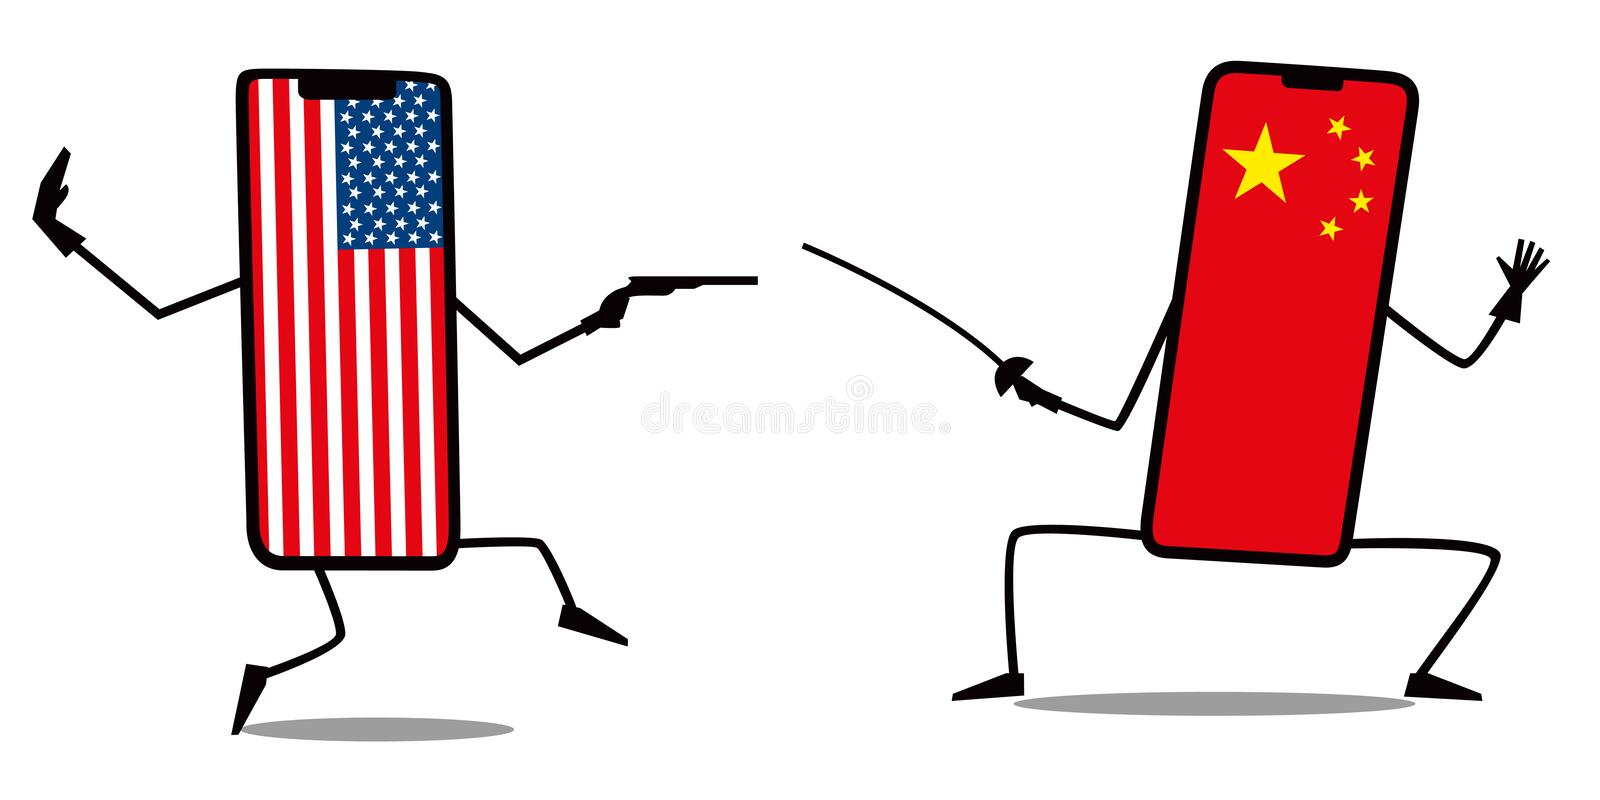 A duel between an American and a Chinese telephone. Pistol fights with a sword. Fun minimalistic graphics royalty free illustration